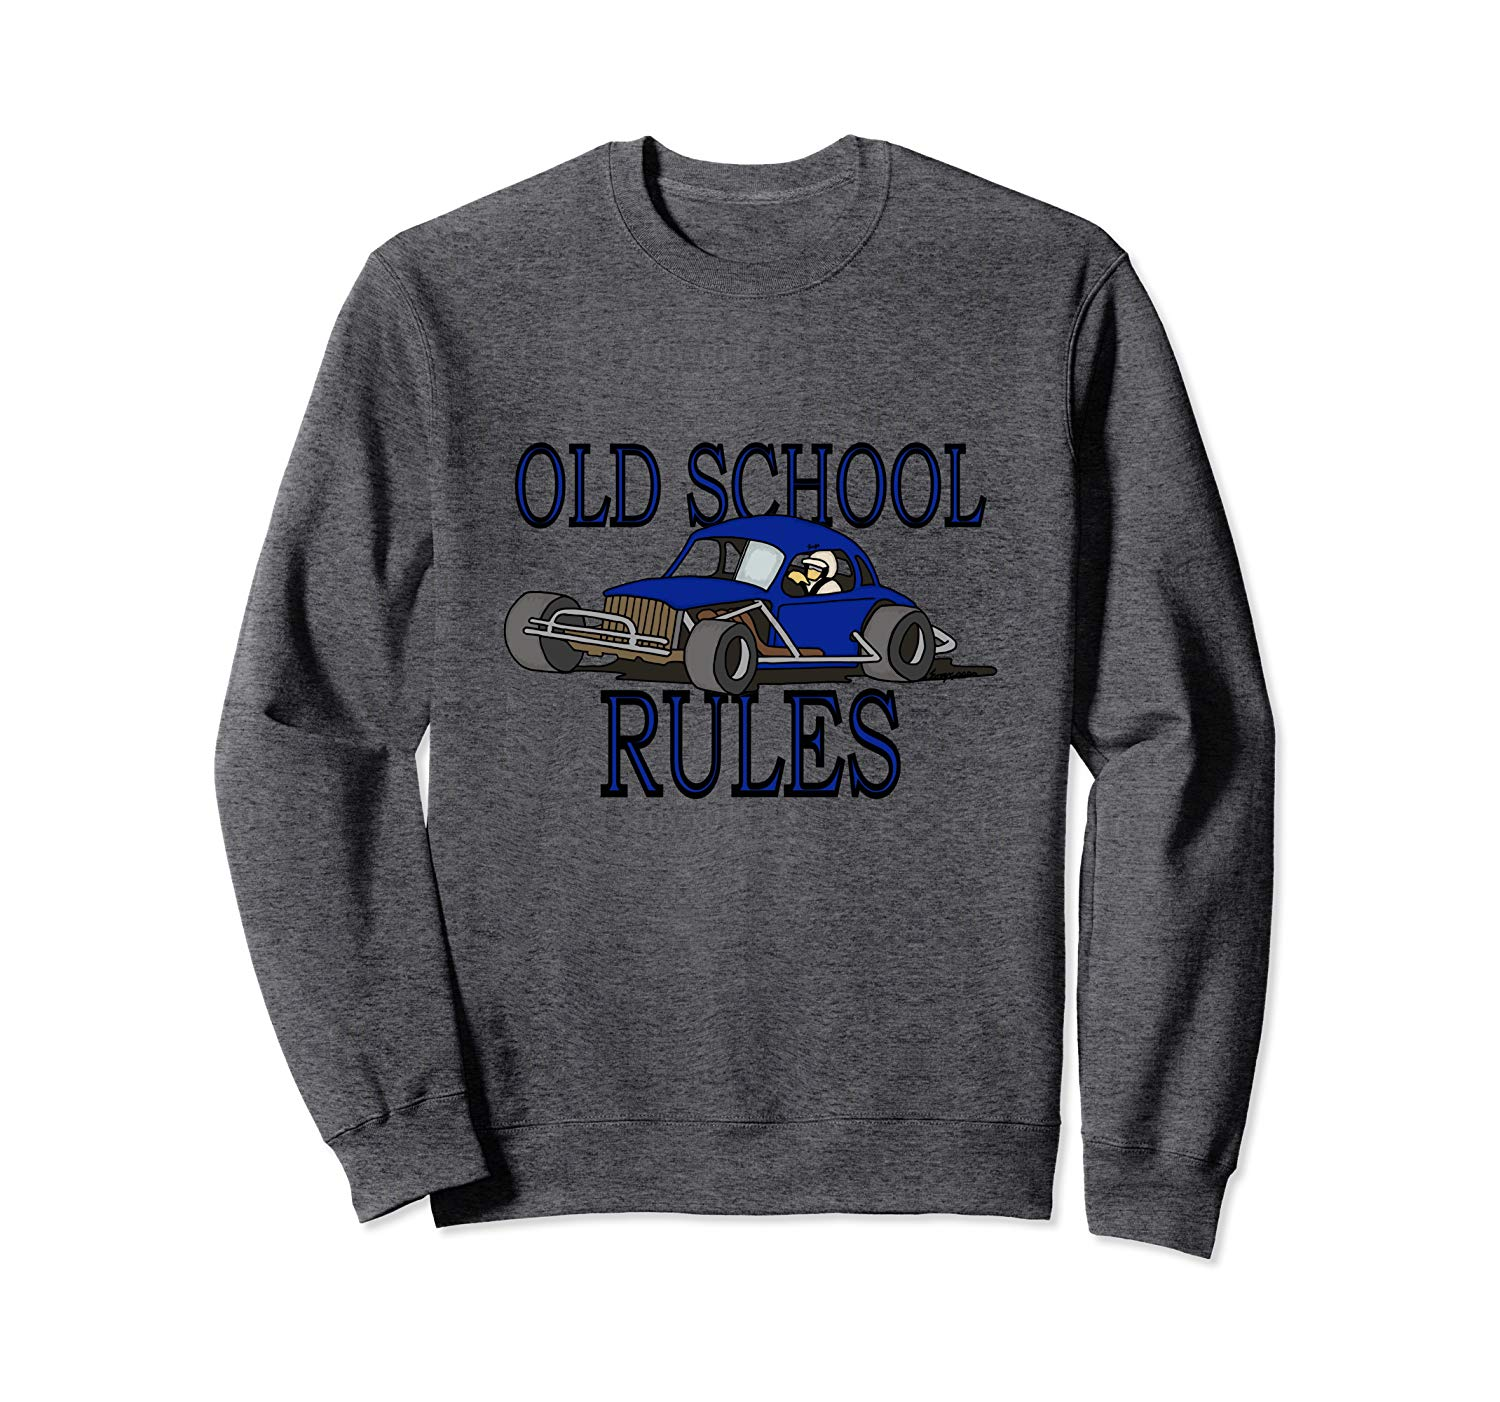 Stock Car Shirt OLD SCHOOL RULES Blue coupe racing gift sweatshirt